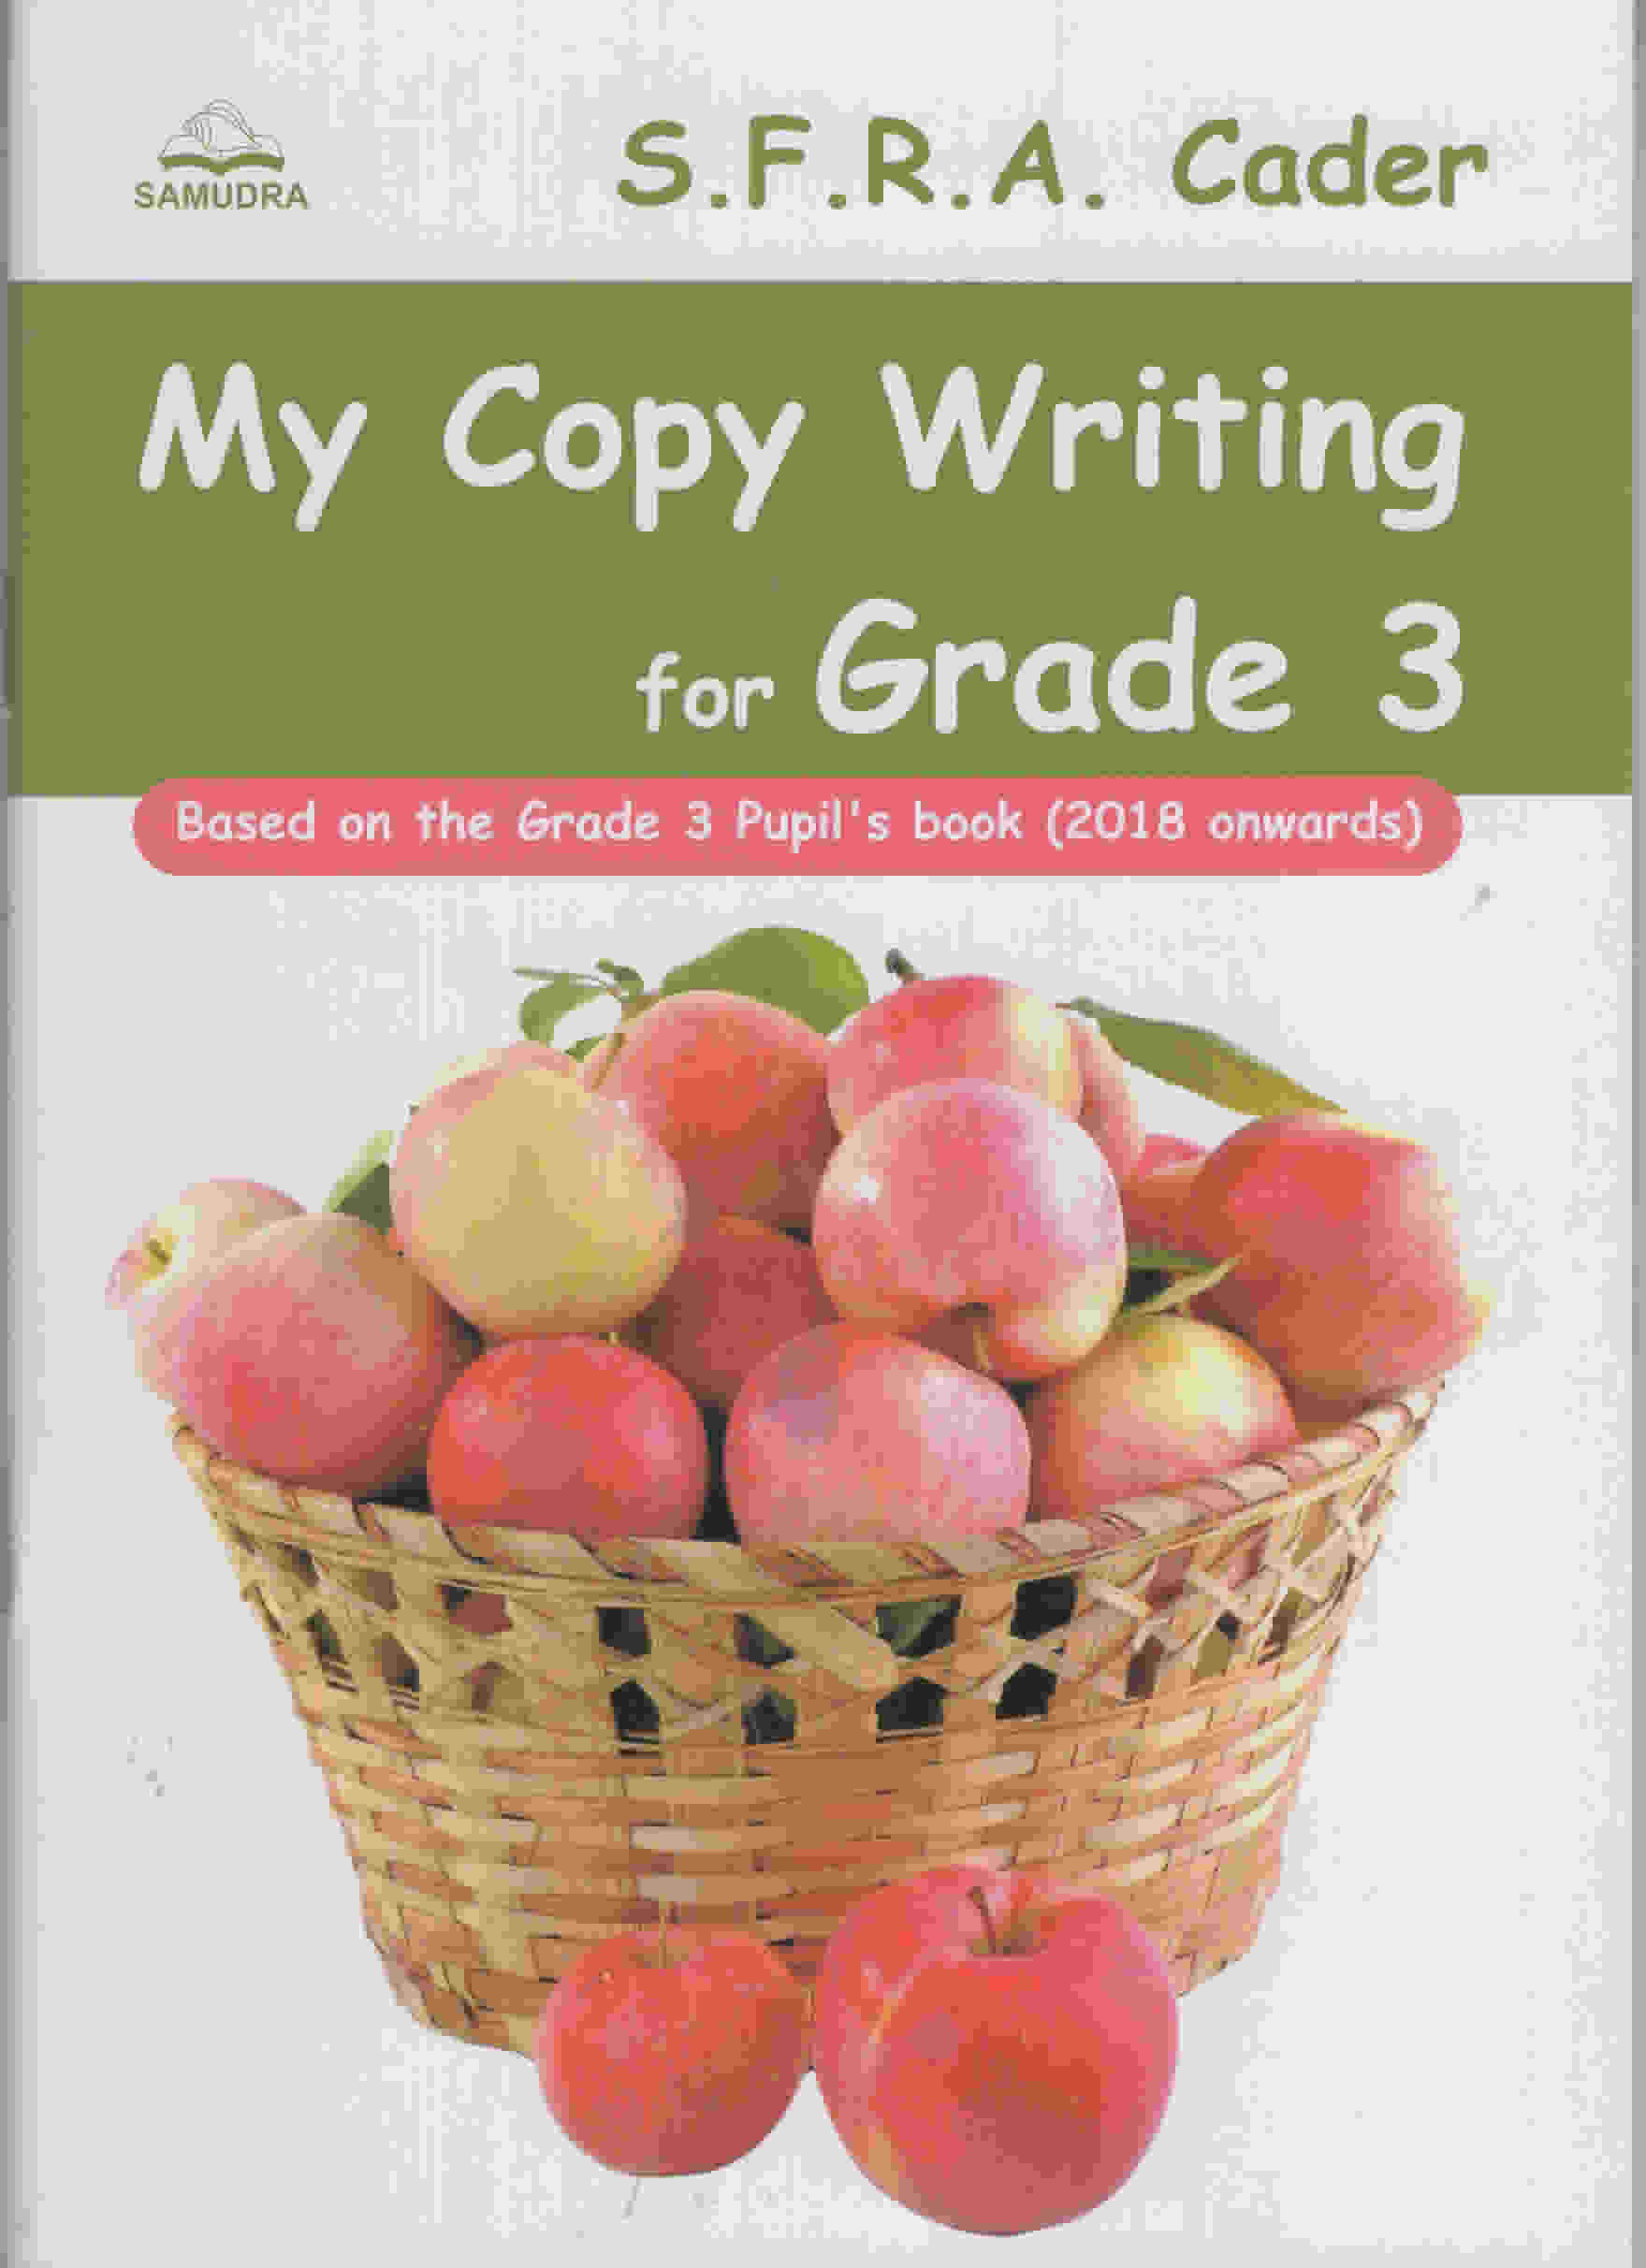 My Copy Writing for Grade 3